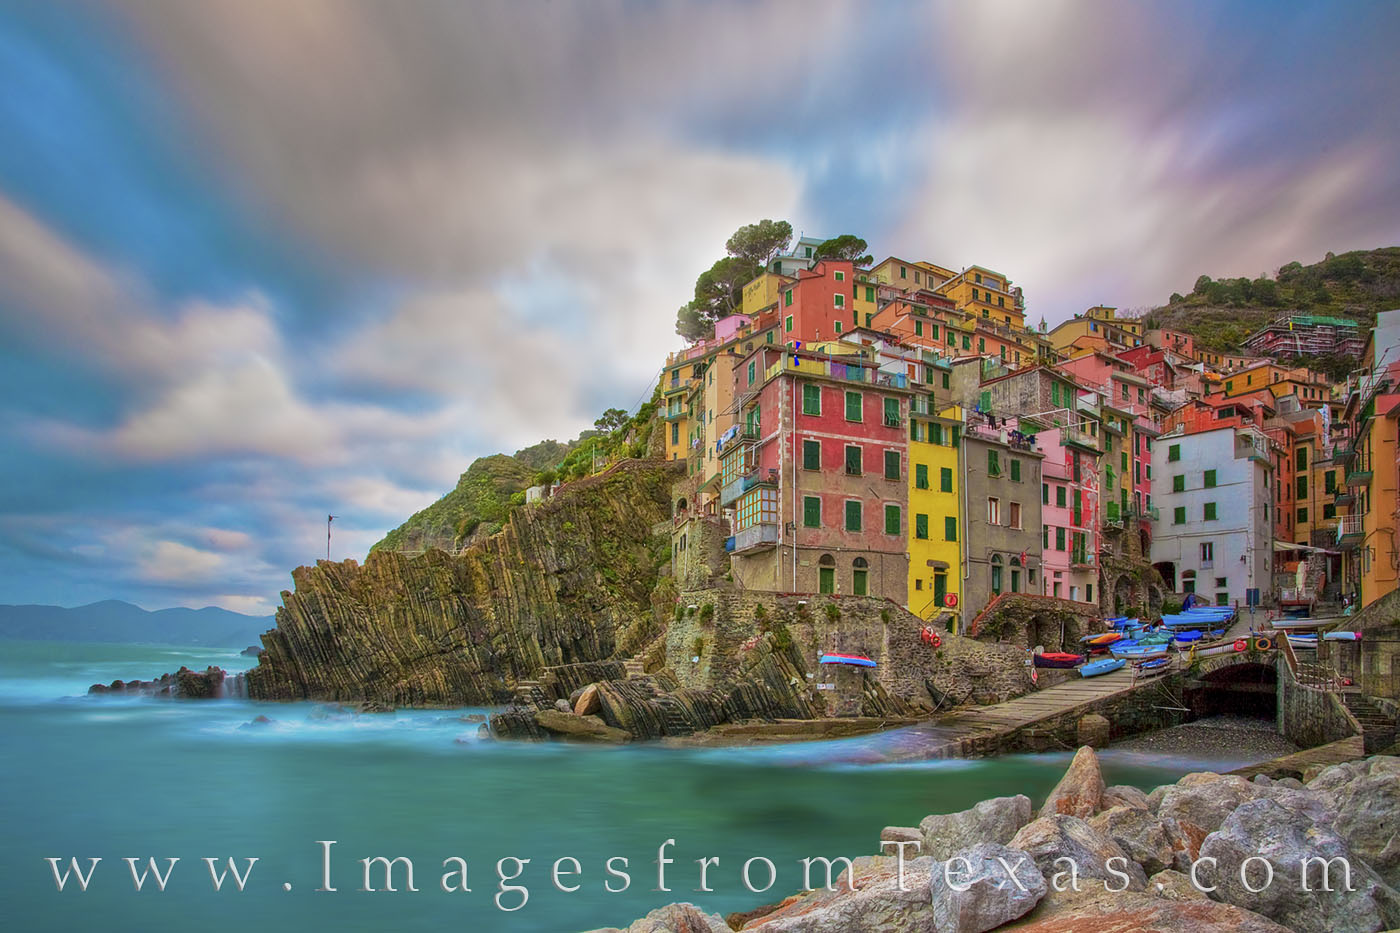 Riomaggiore, southernmost village in Italia's Cinque Terre, is a magical place worthy of spending a few quiet days. The town...